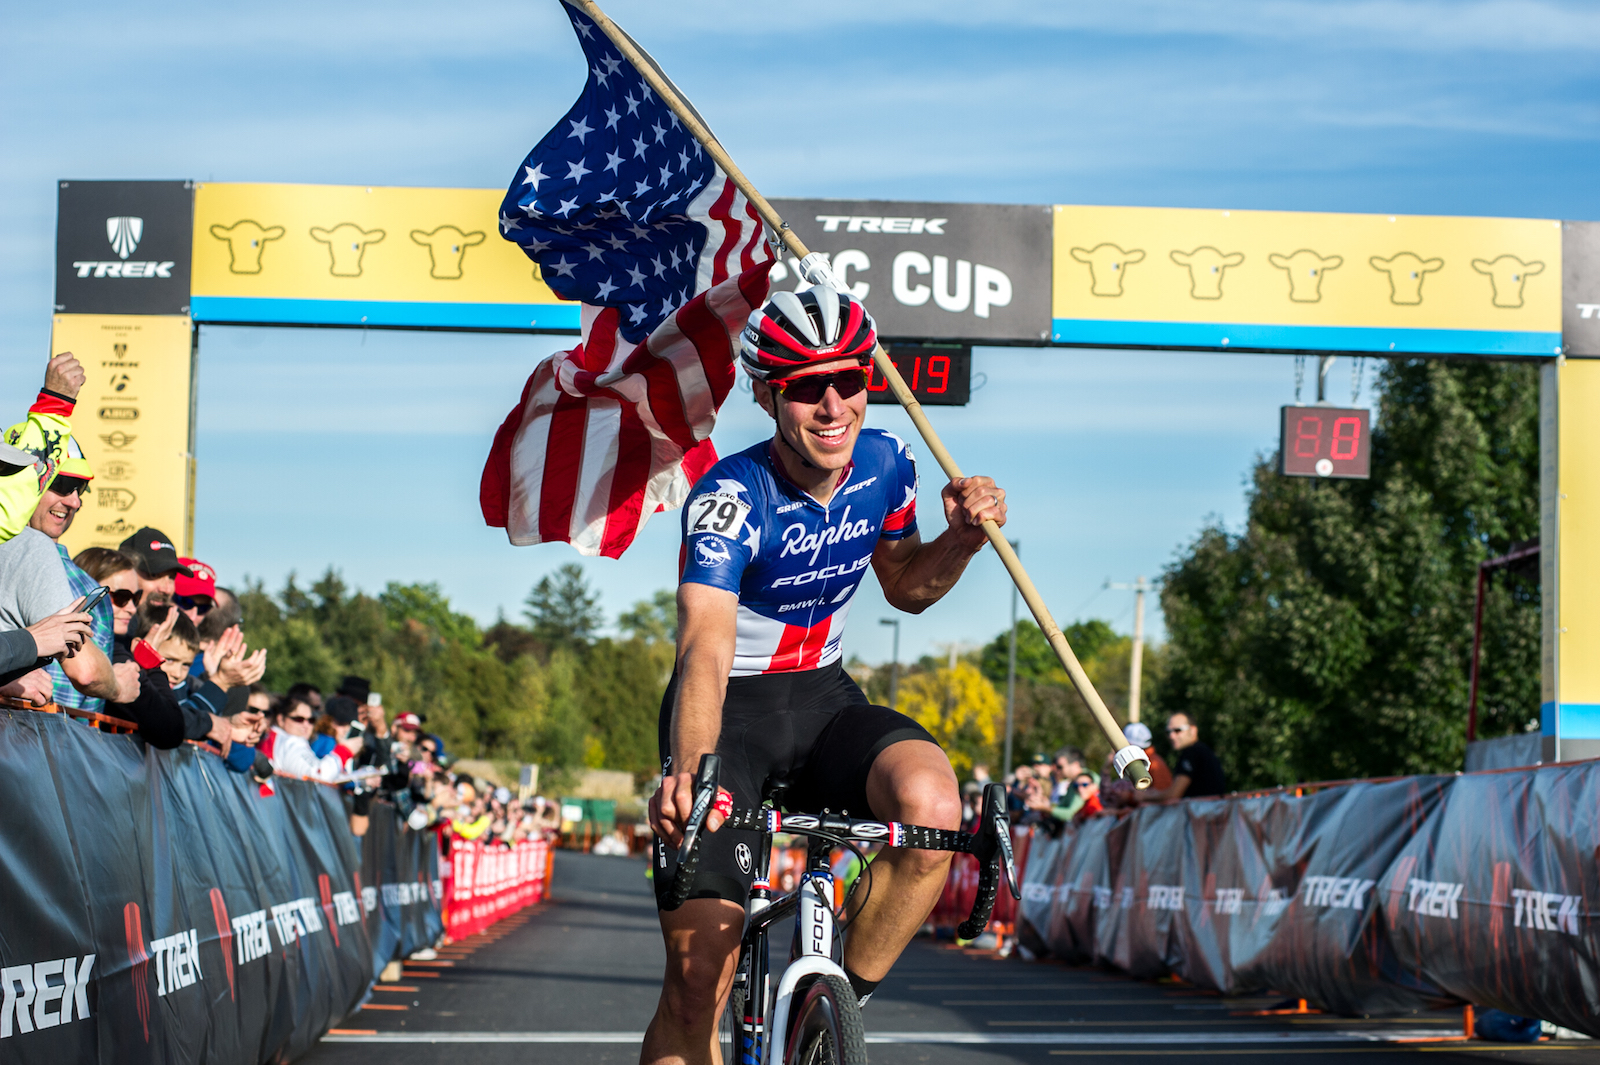 """Ethan Glading, United States. """"Jeremy Powers carries an American flag across the finish line as he wins the 2015 edition of the Trek CXC Cup cyclocross race in Waterloo, Wisconsin."""" Professional. @thepenultimatestage"""